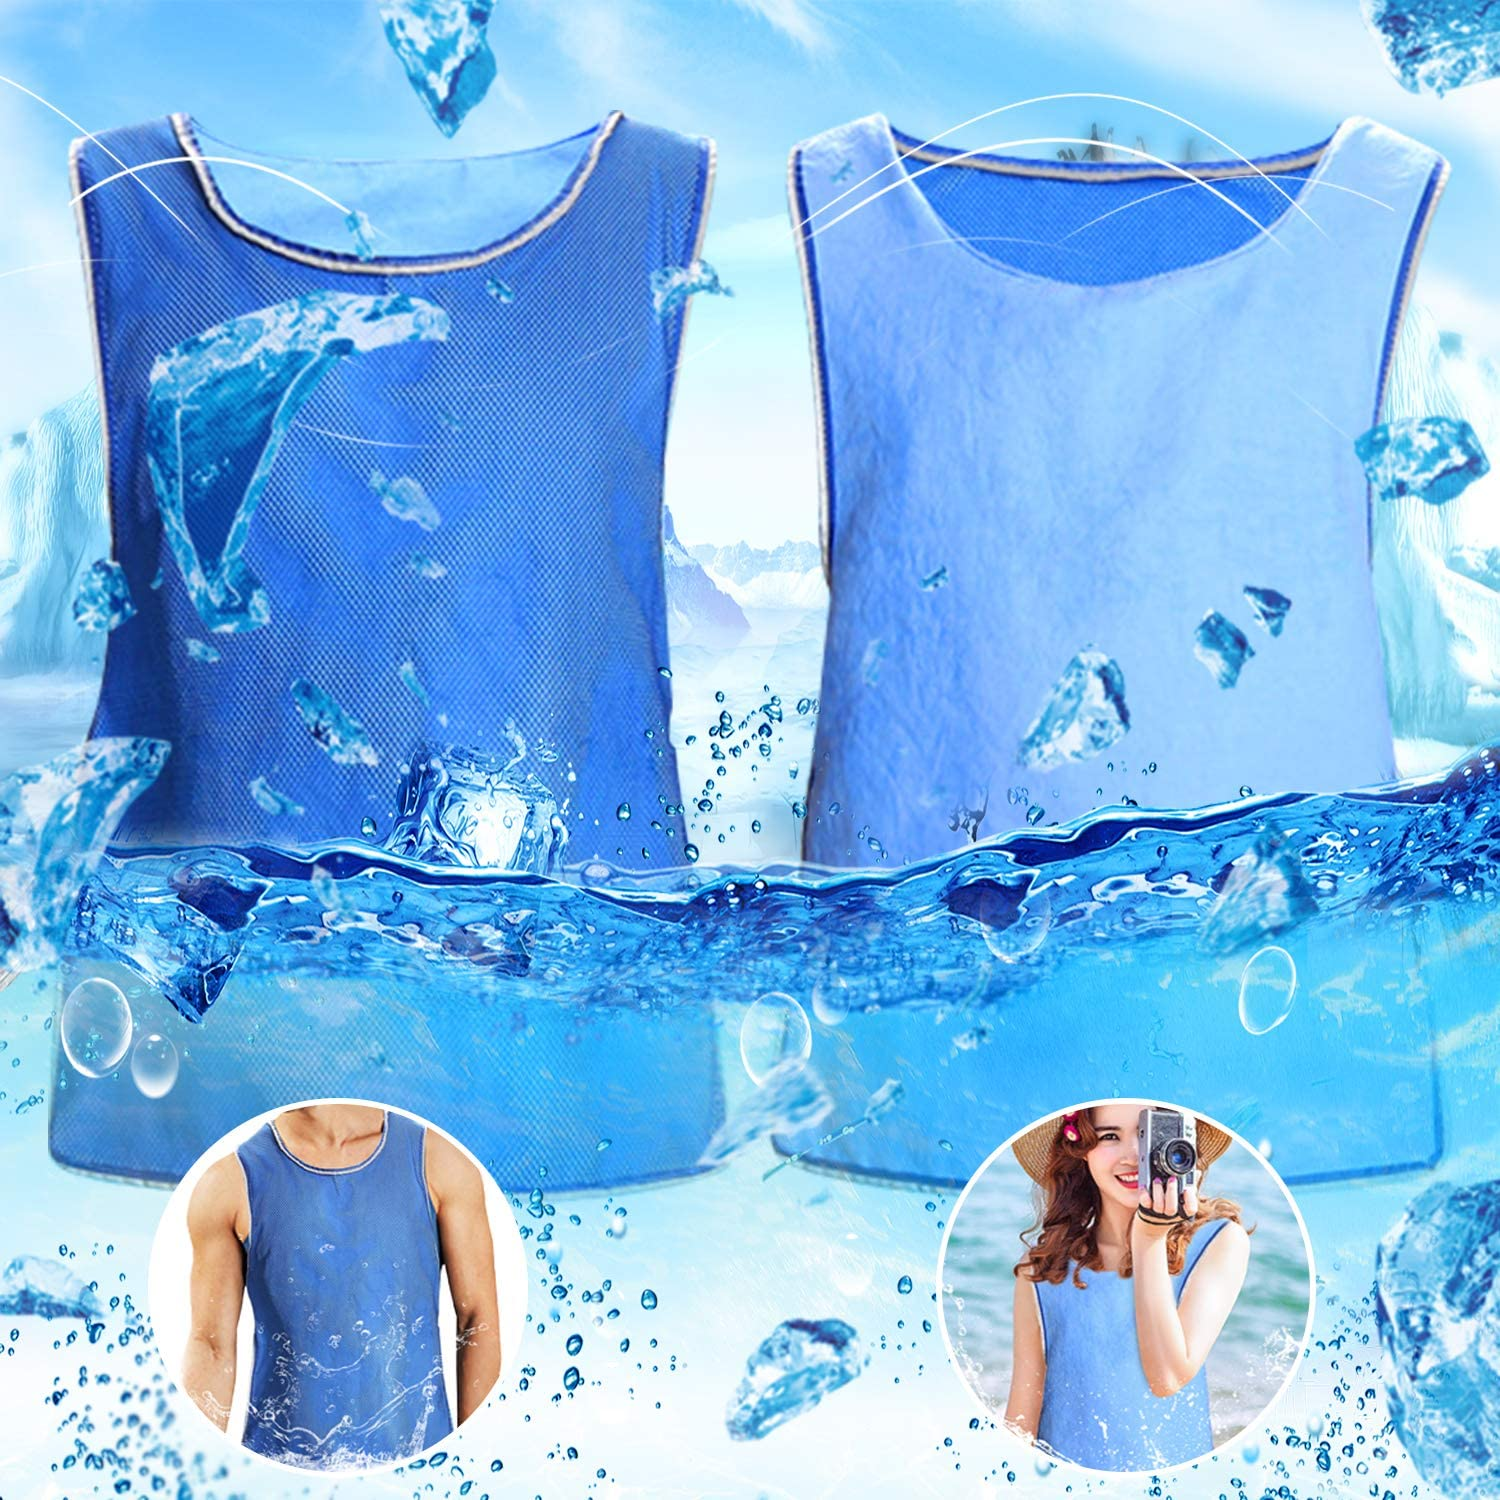 Evaporative Cooling Vest for Men Reversible Ice Cooling Vest for MS Working PVA Sports Sunstroke High Temperature Prevention Clothing (Blue)